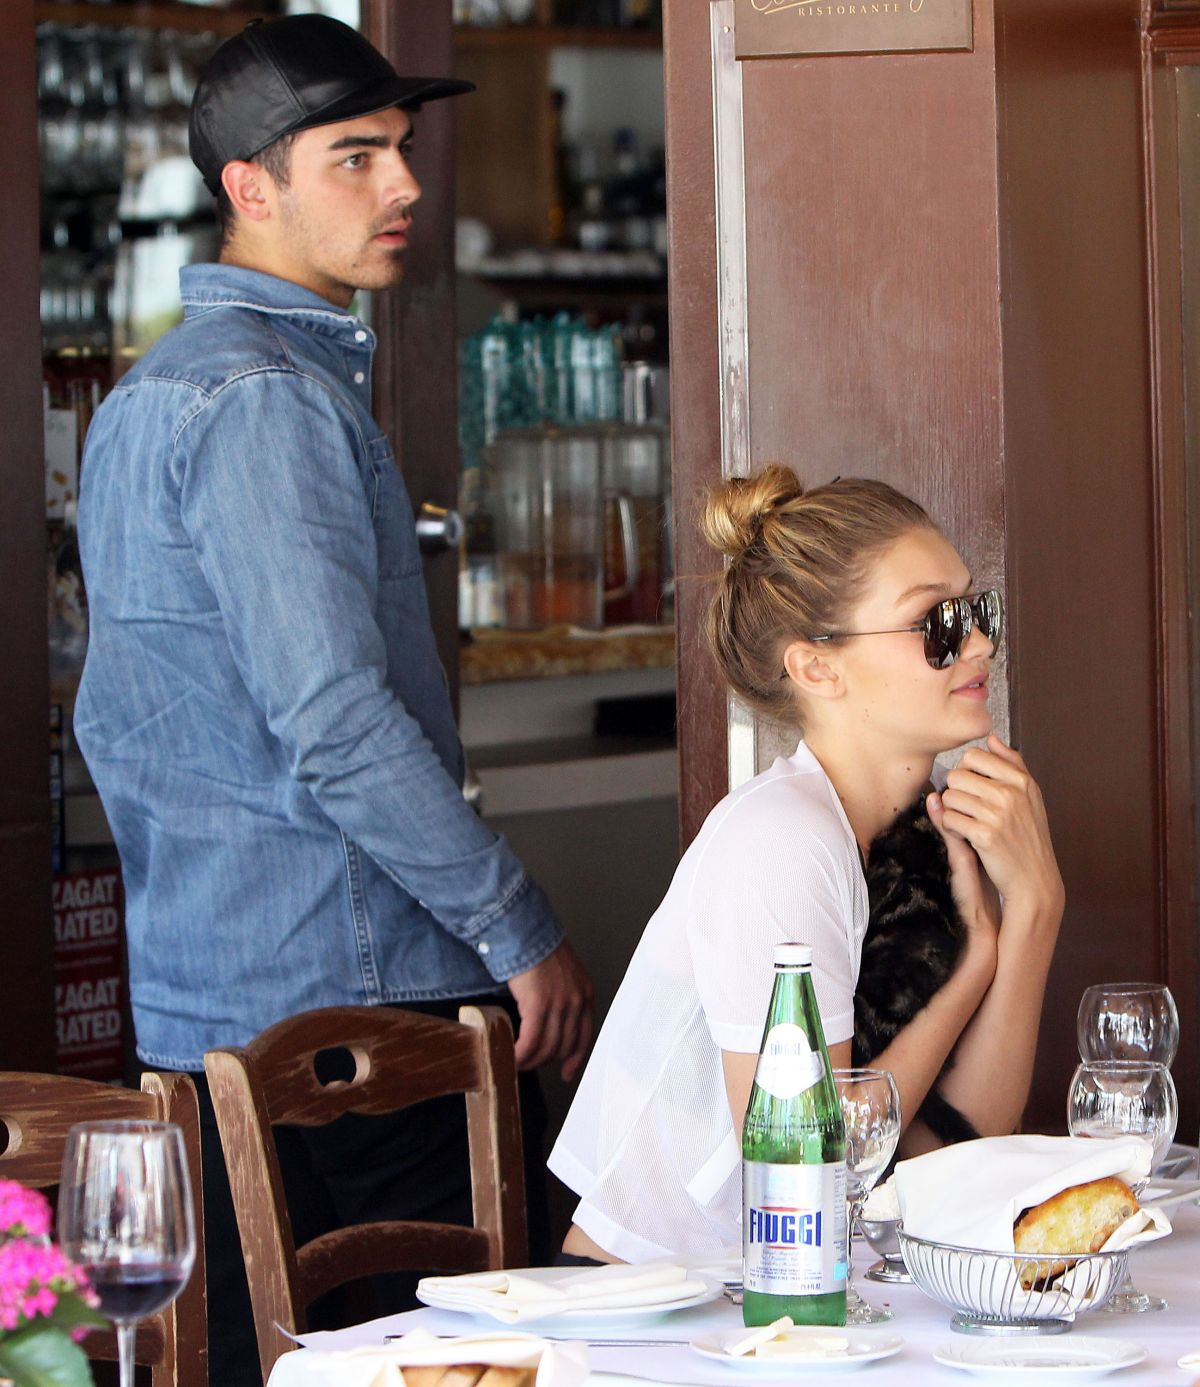 GIGI HADID at Il Pastaio in Beverly Hills 06/15/2015 ...